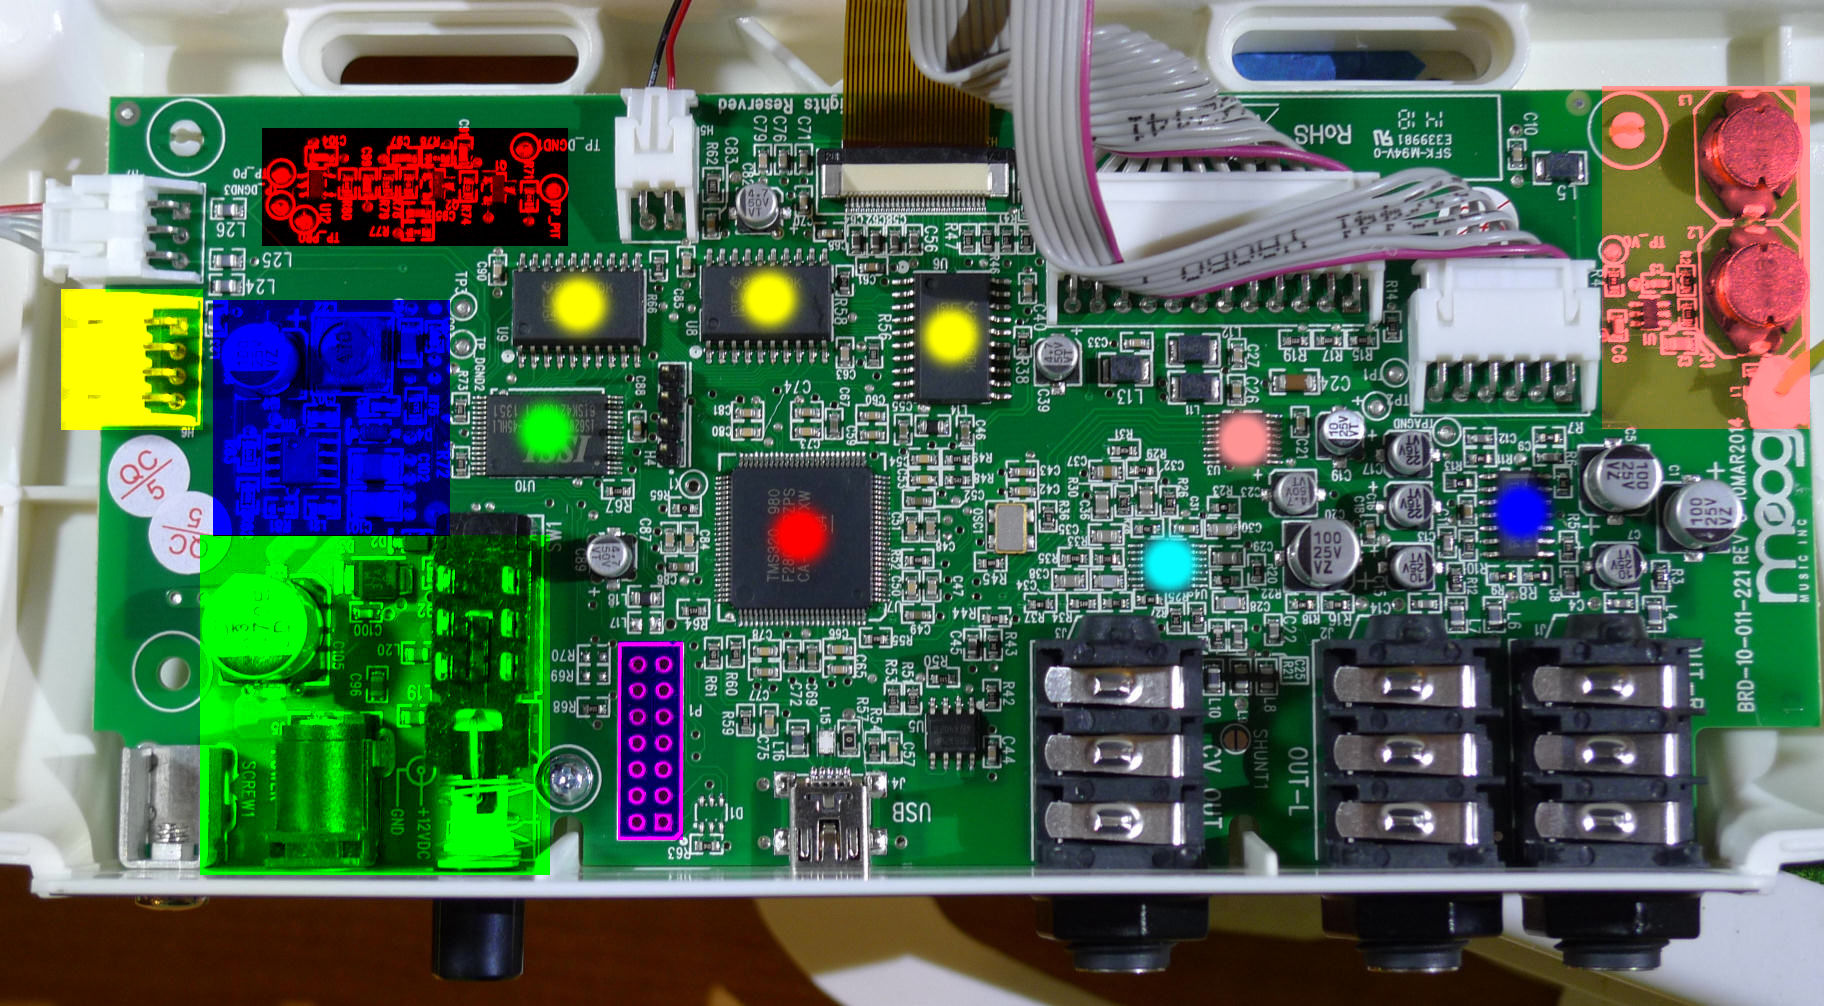 Theremin World Topic Moog Music Theremini Reviews Electronic Circuit Board Cleaner Spray Can Jaycar Electronics New Painted Colored Round Spots Above From Left To Right